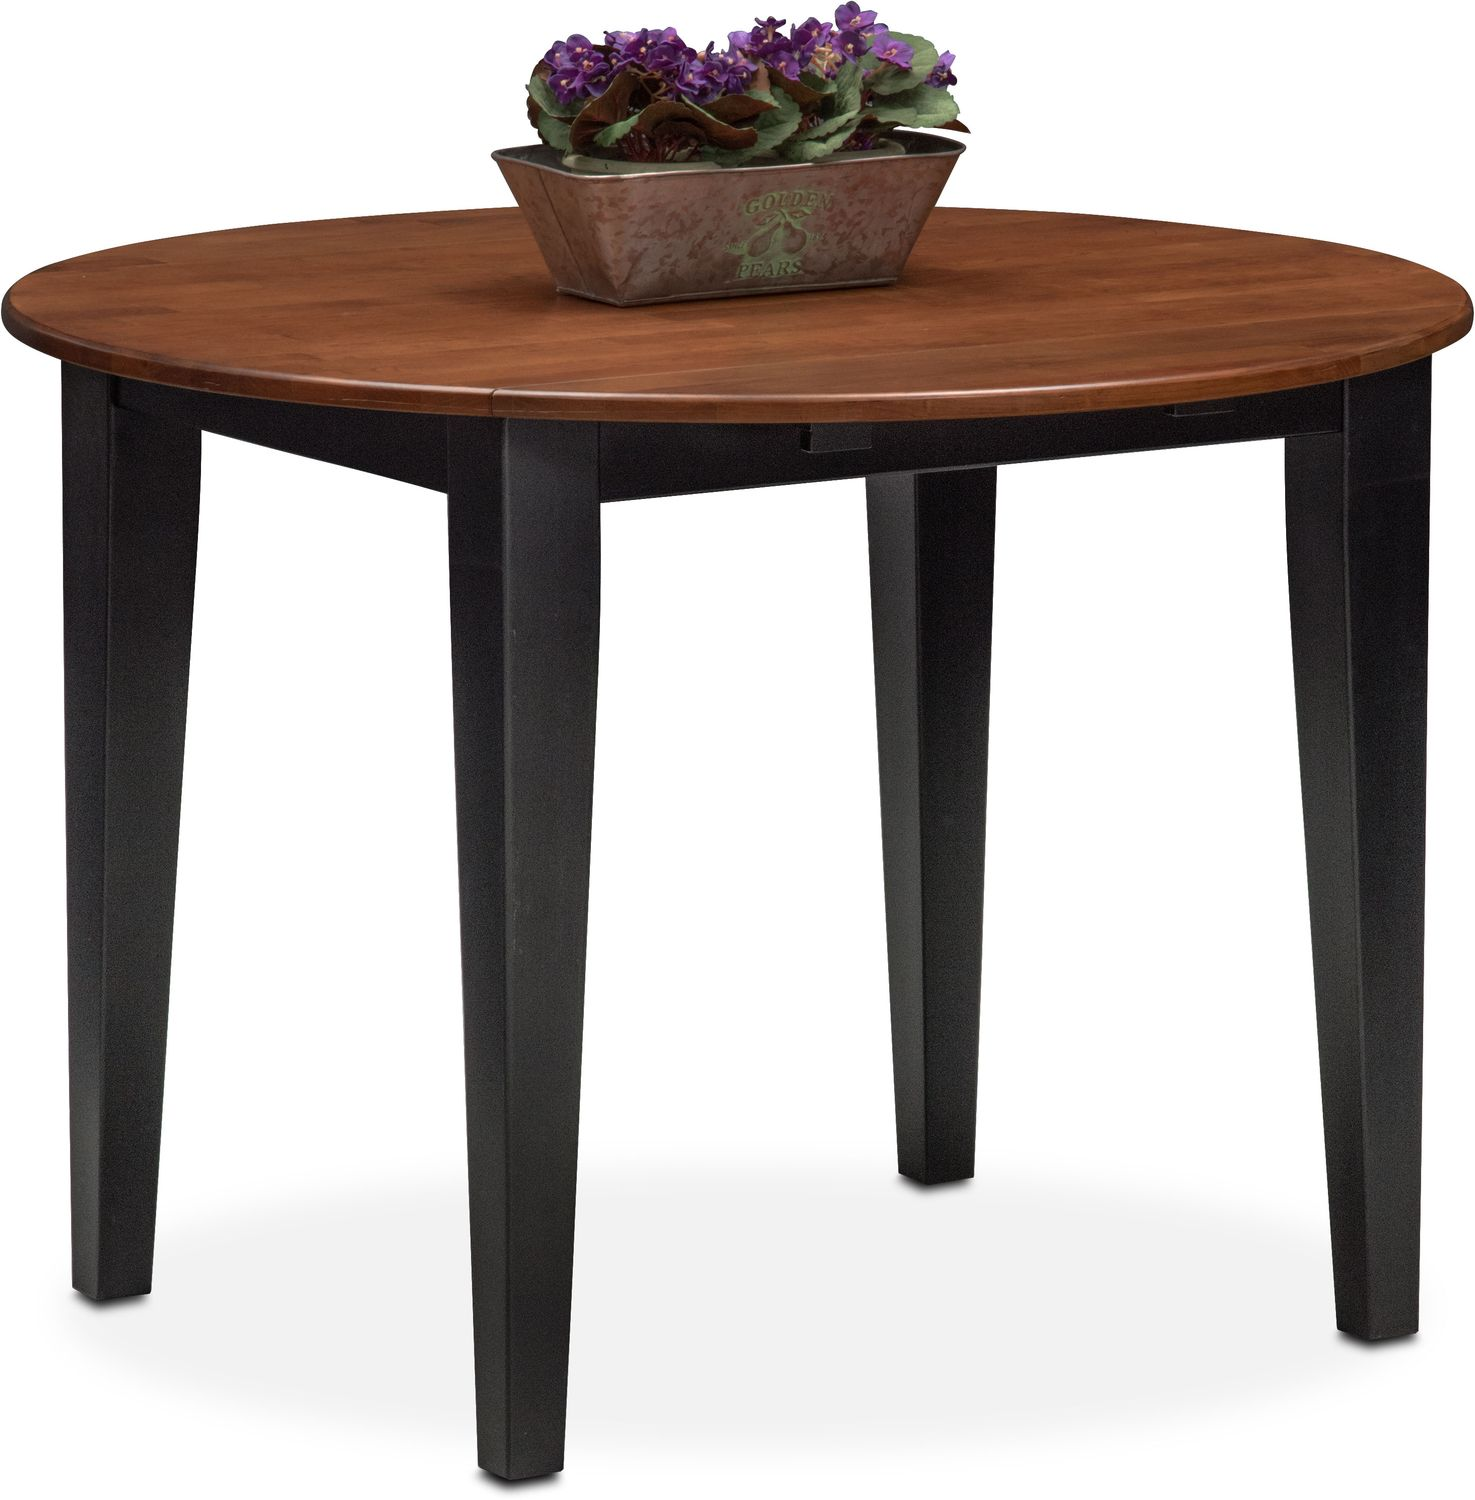 Nantucket drop leaf table black and cherry american for Black dining table with leaf